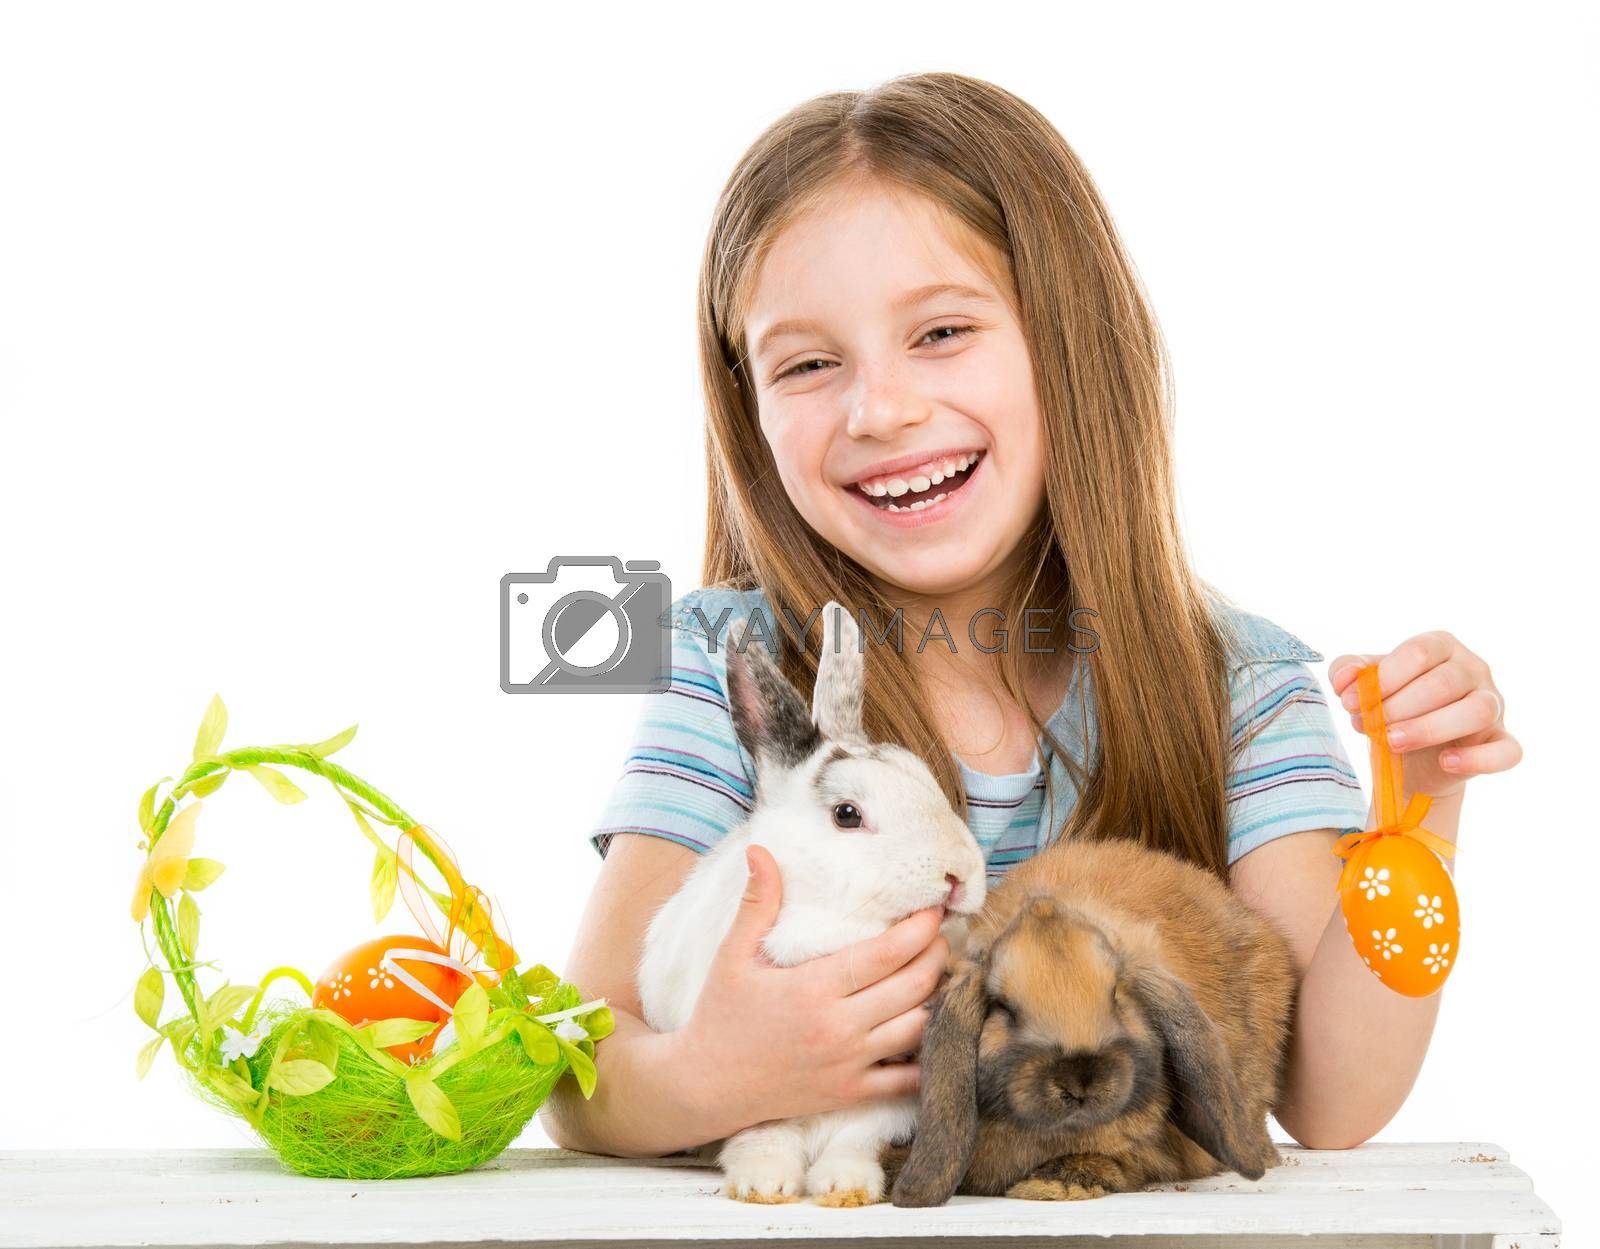 Royalty free image of little girl with rabbits by GekaSkr